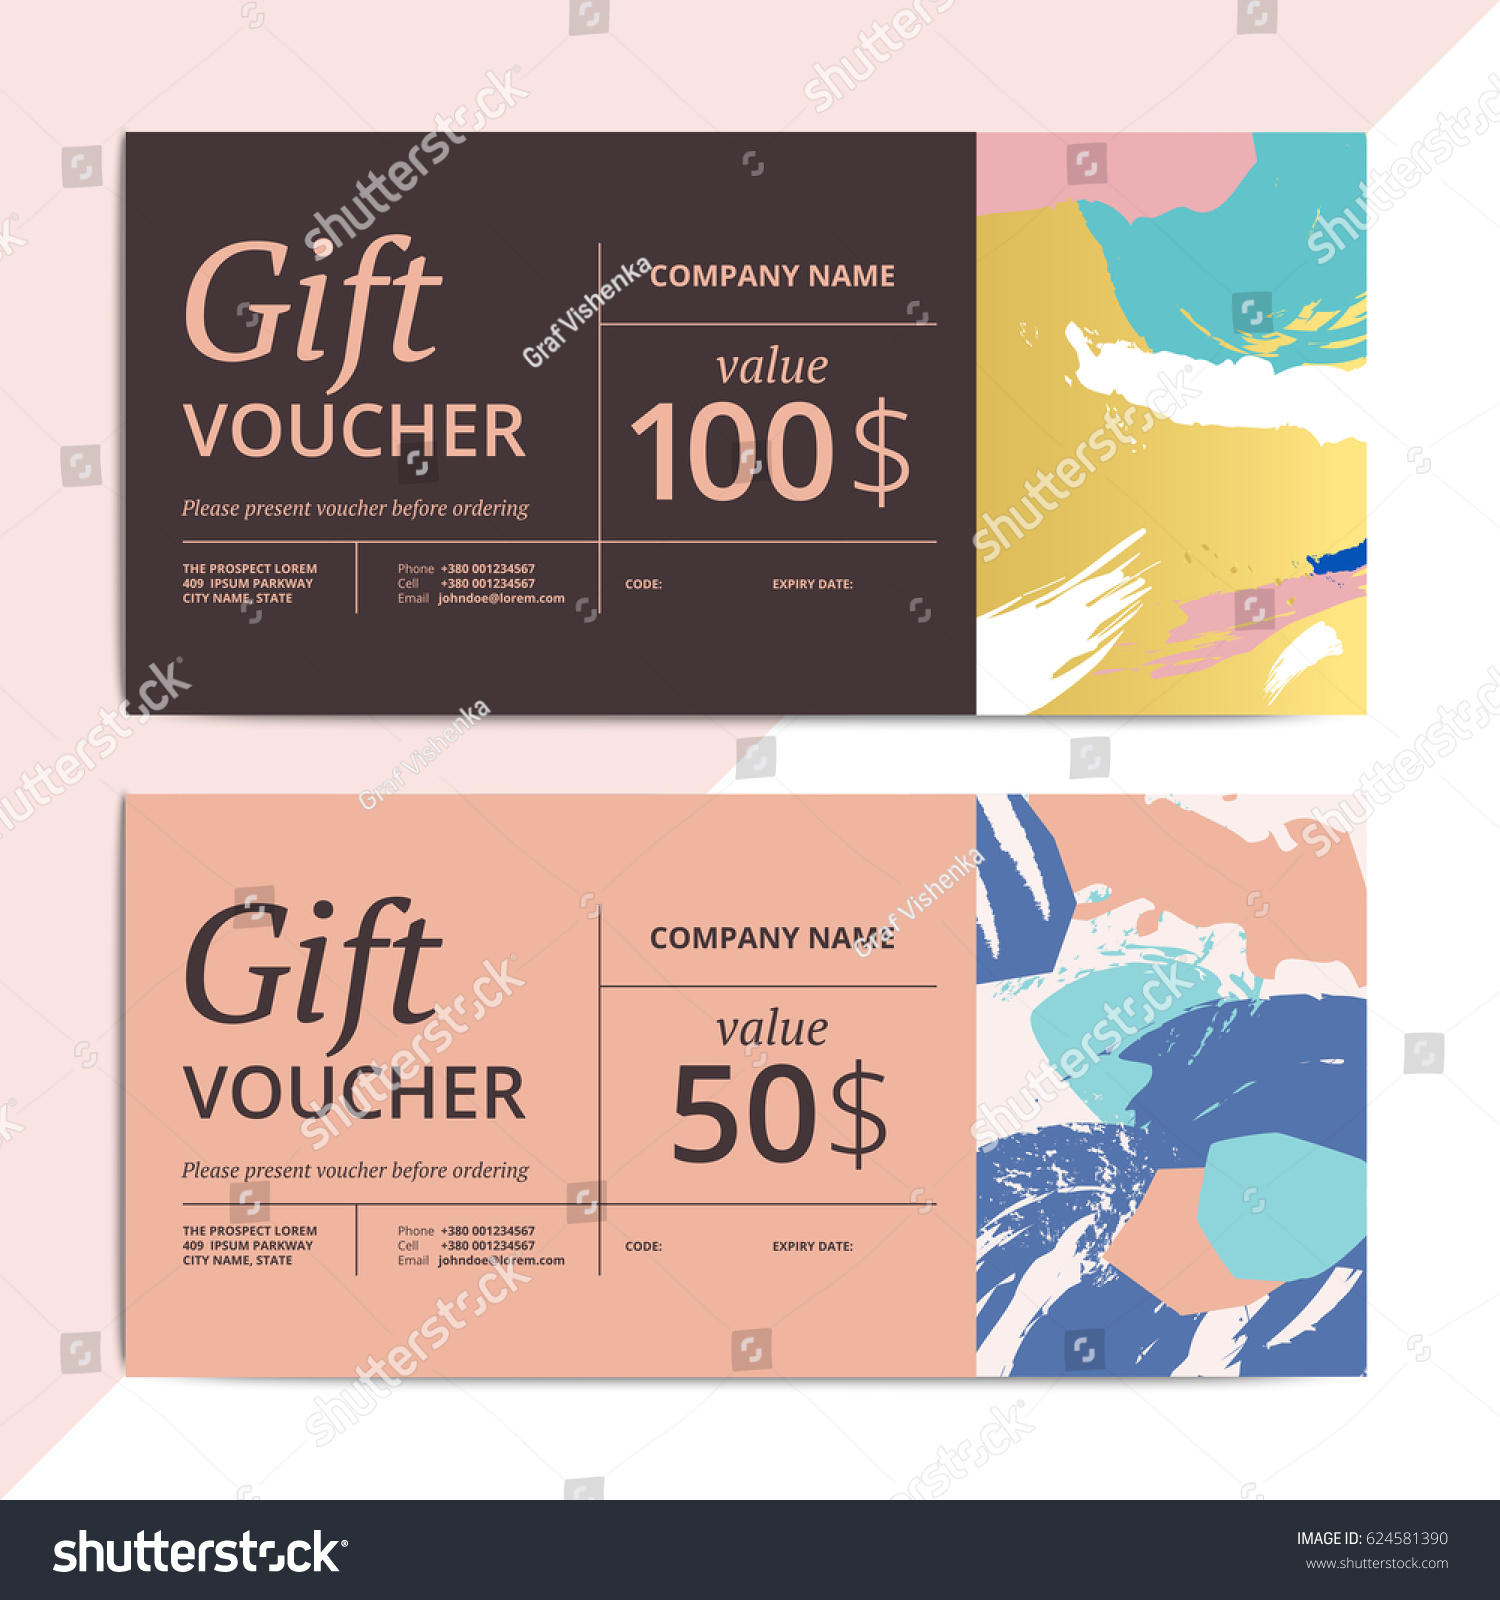 trendy abstract gift voucher card templates のベクター画像素材